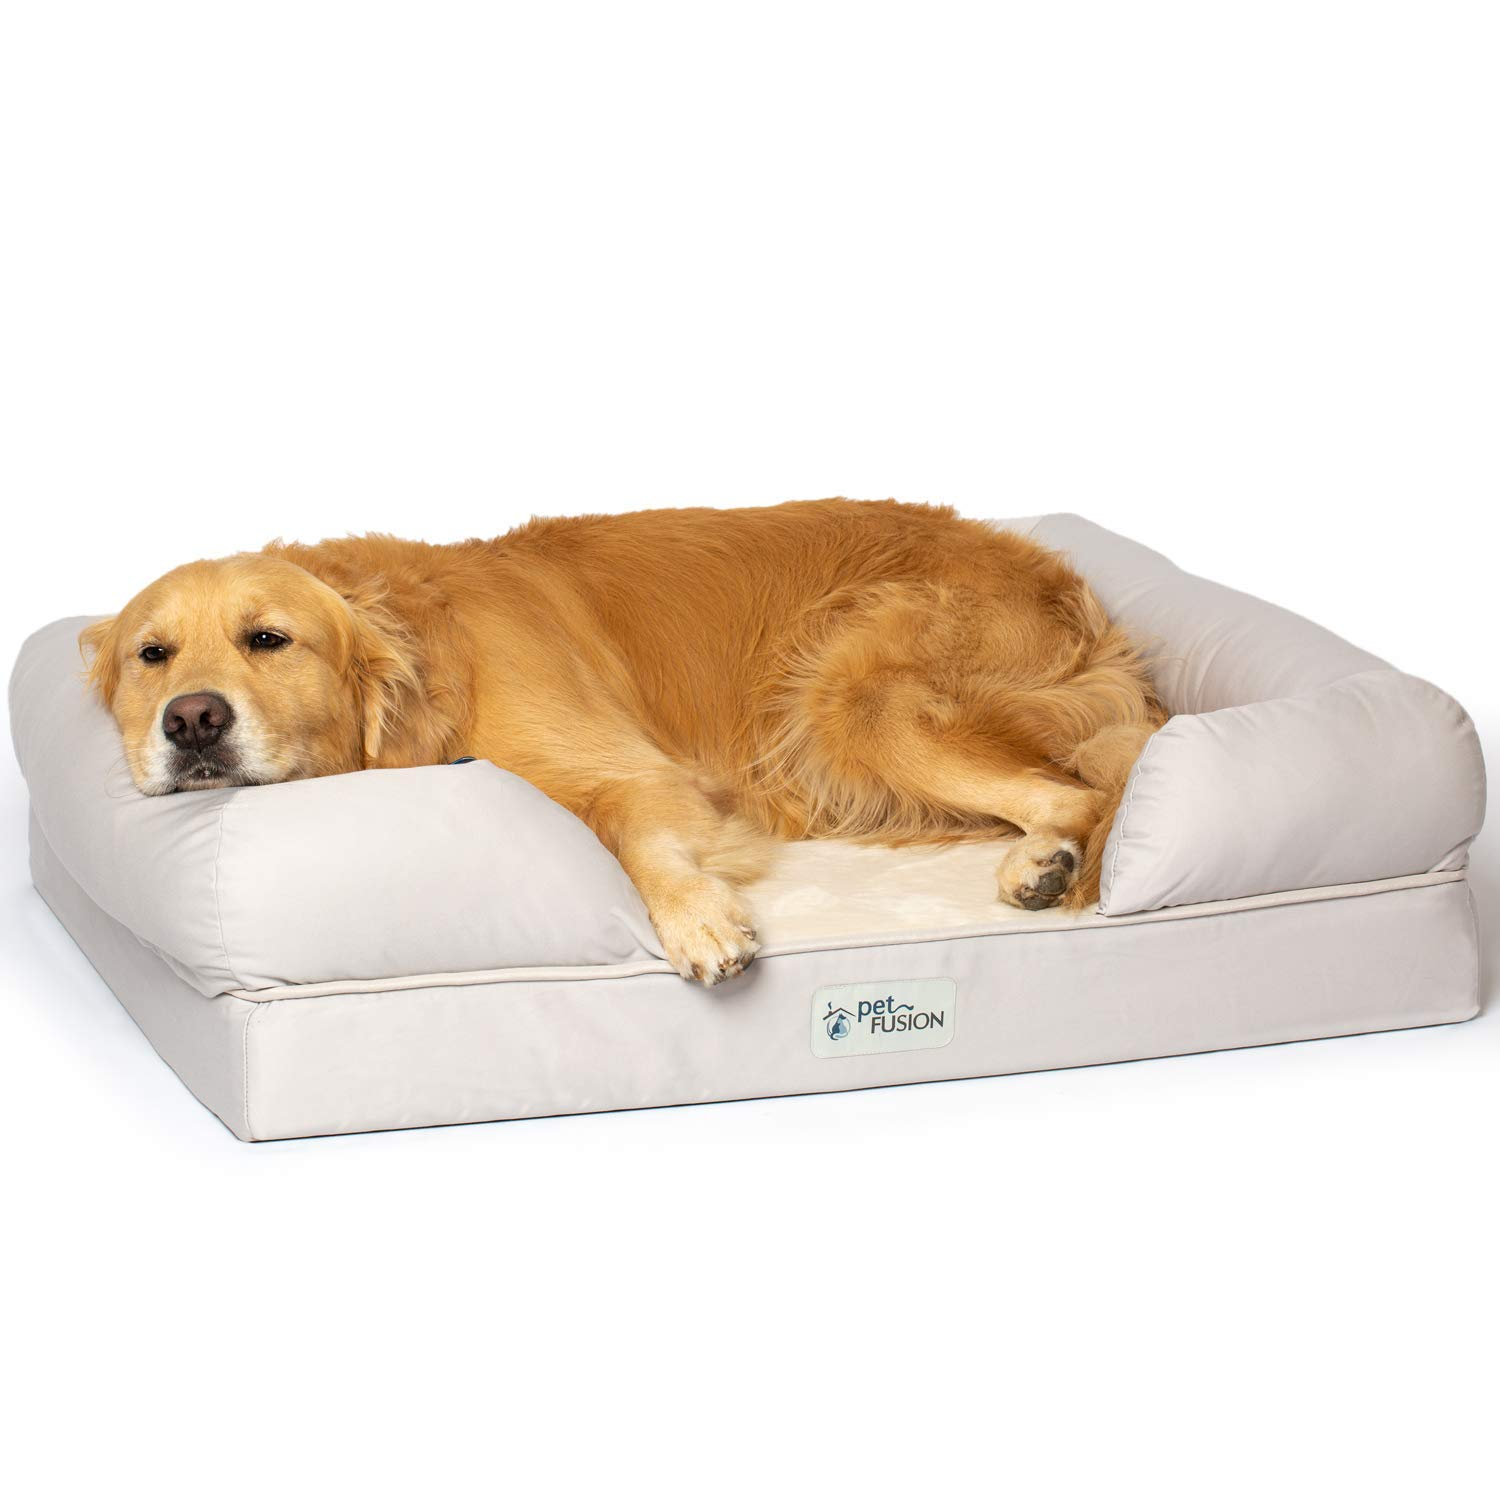 PetFusion Ultimate Dog Bed, Orthopedic Memory Foam. (Small Sandstone, Medium Firmness, Waterproof Liner, YKK Zippers, More Breathable 35% Cotton Cover, Cert. Skin Contact Safe). 2yr Warranty